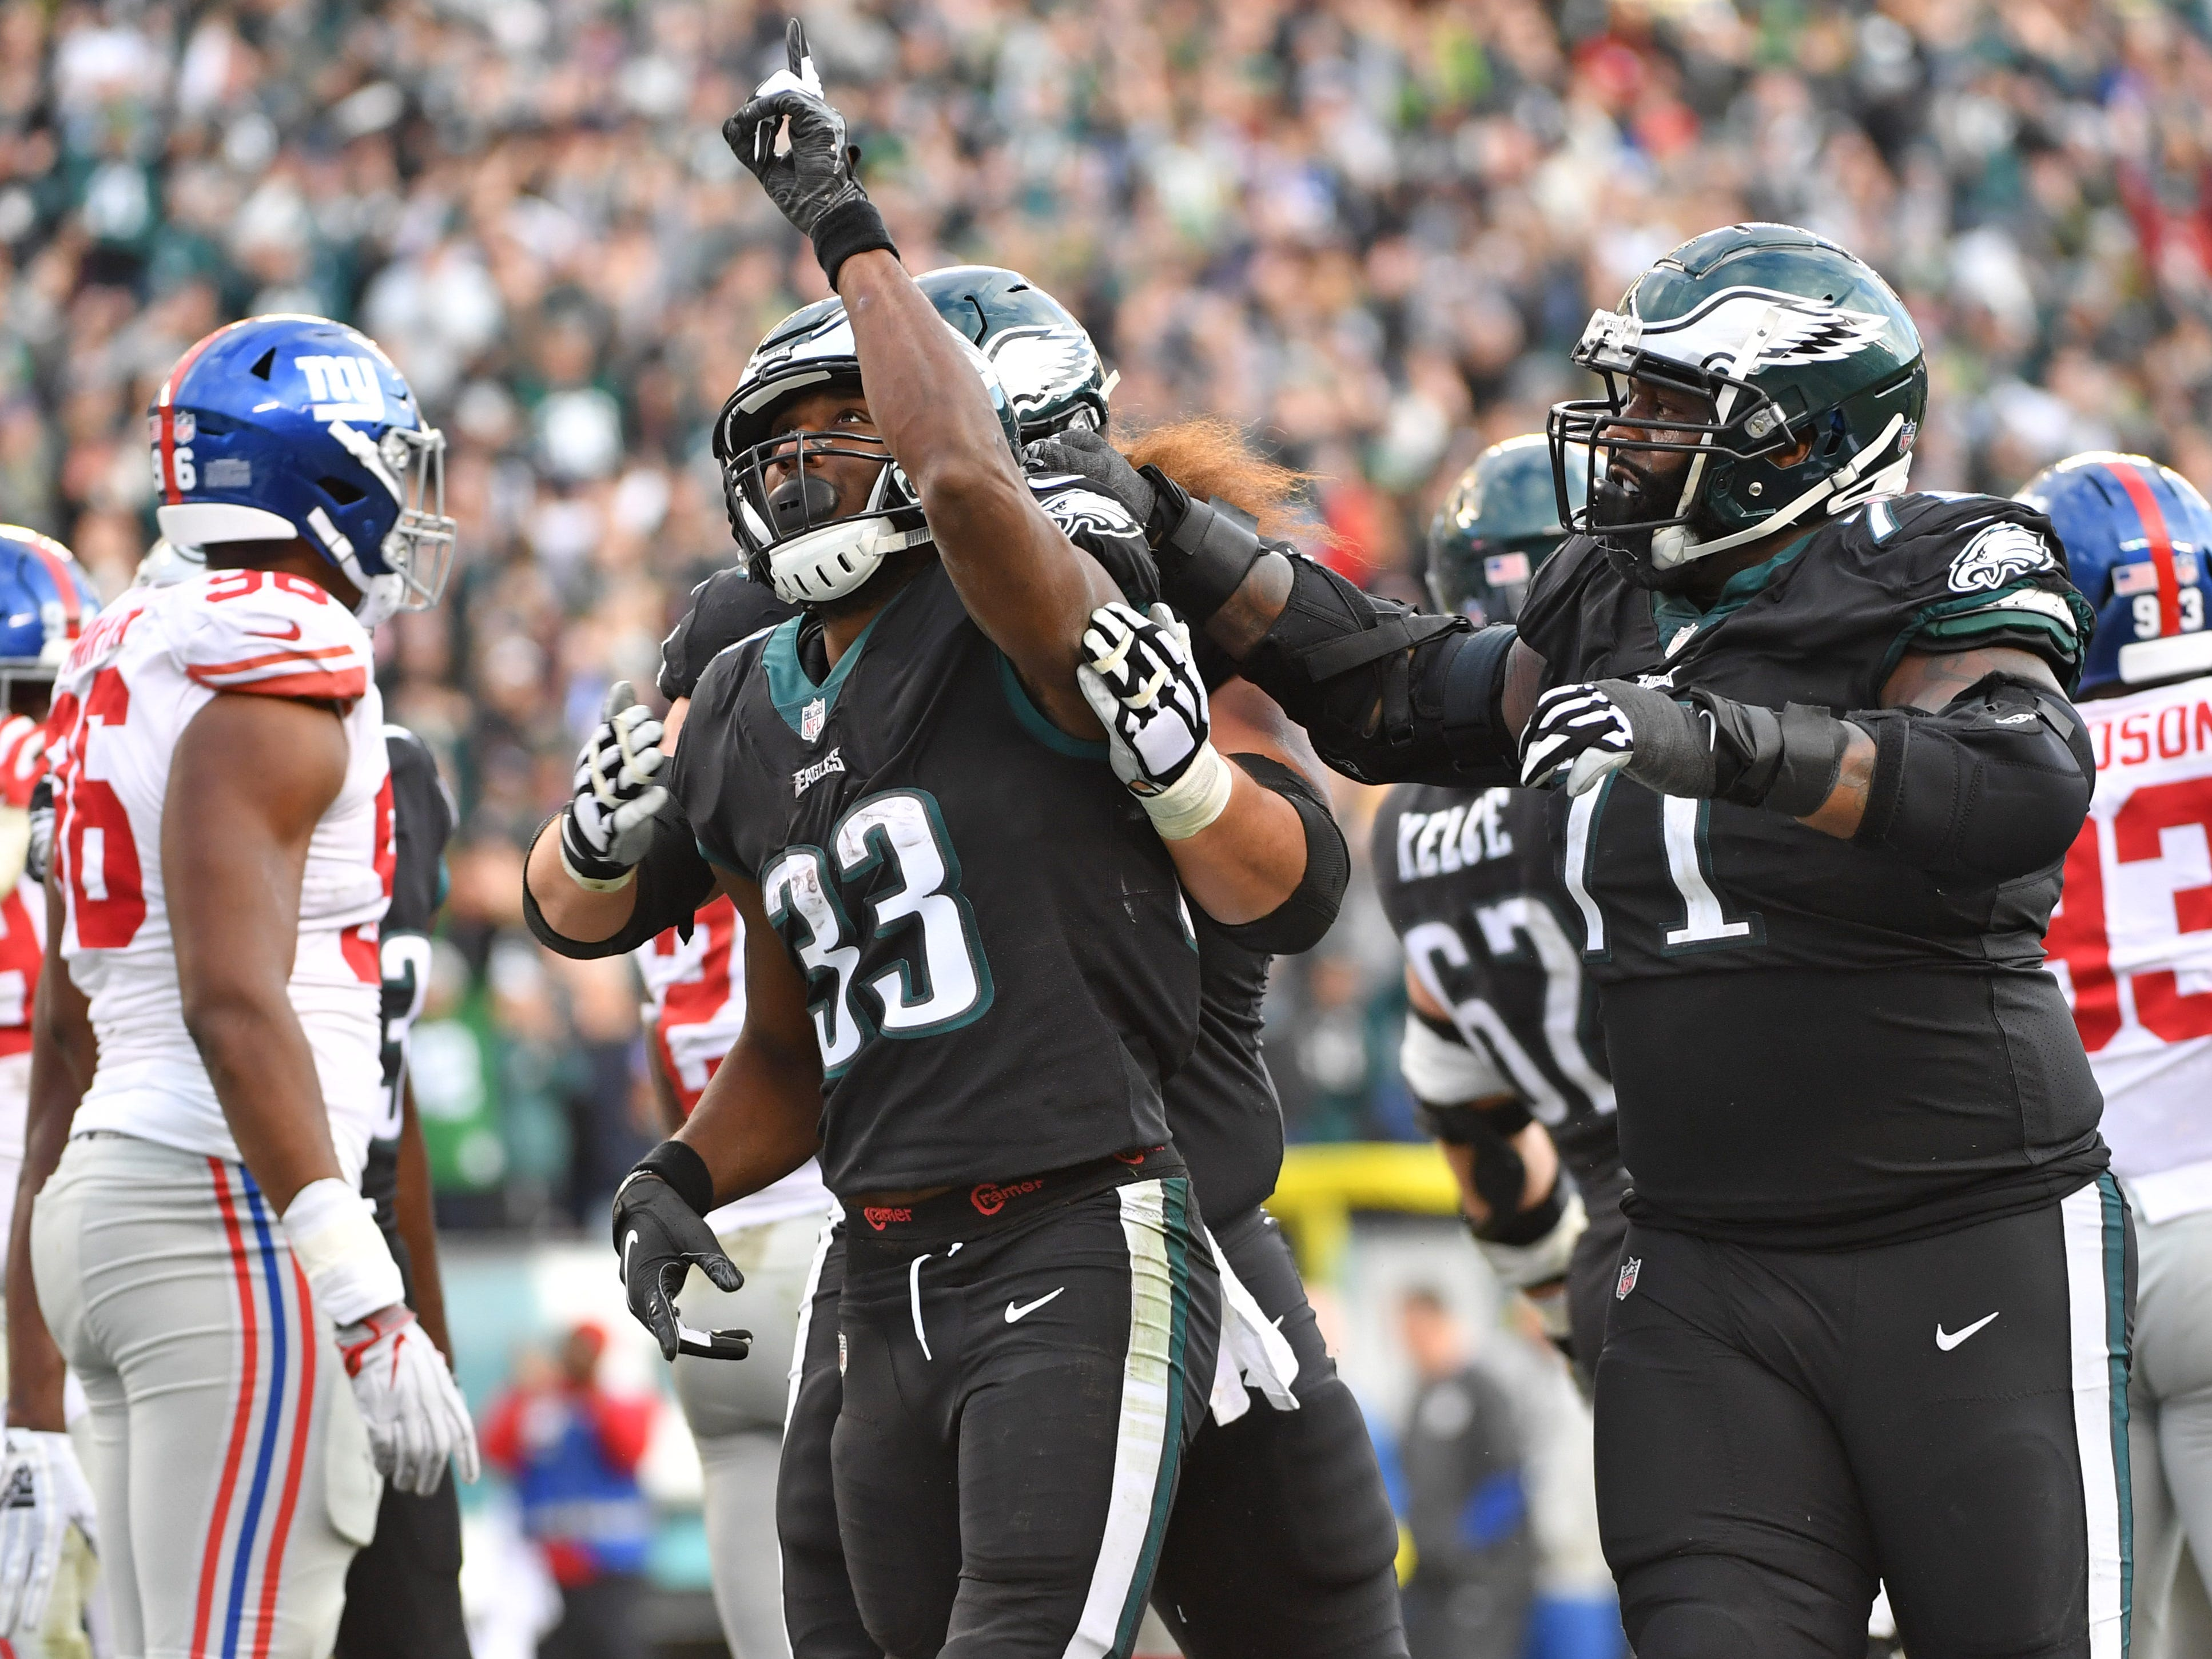 18. Eagles (22): Too bad they don't see Giants every week. Philly's beaten Big Blue five straight and nine of 10 ... but won't see them again until 2019.